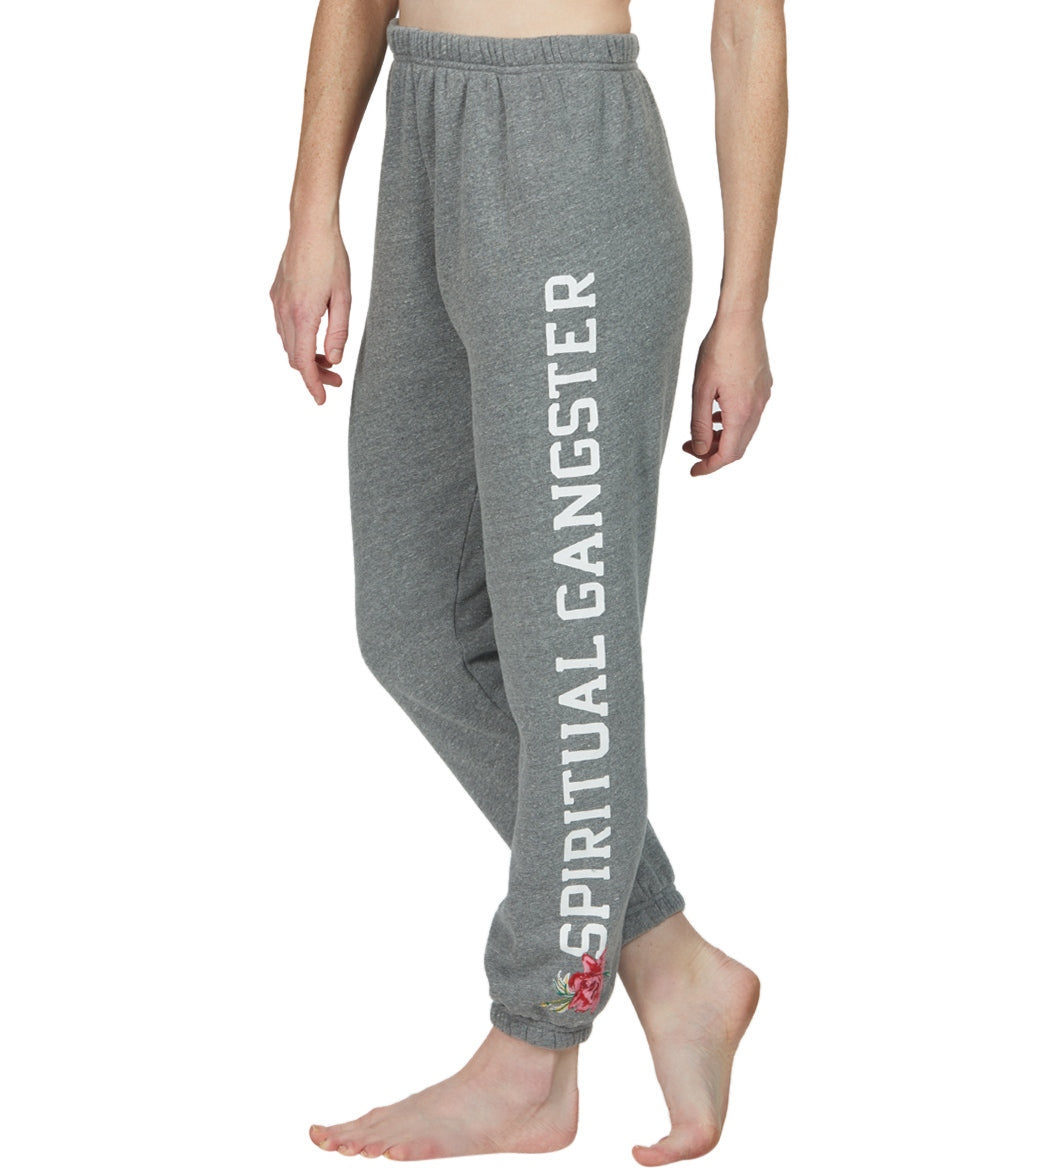 Spiritual Gangster SG Sessions Sweatpant Jogger Pants - Heather Grey Cotton